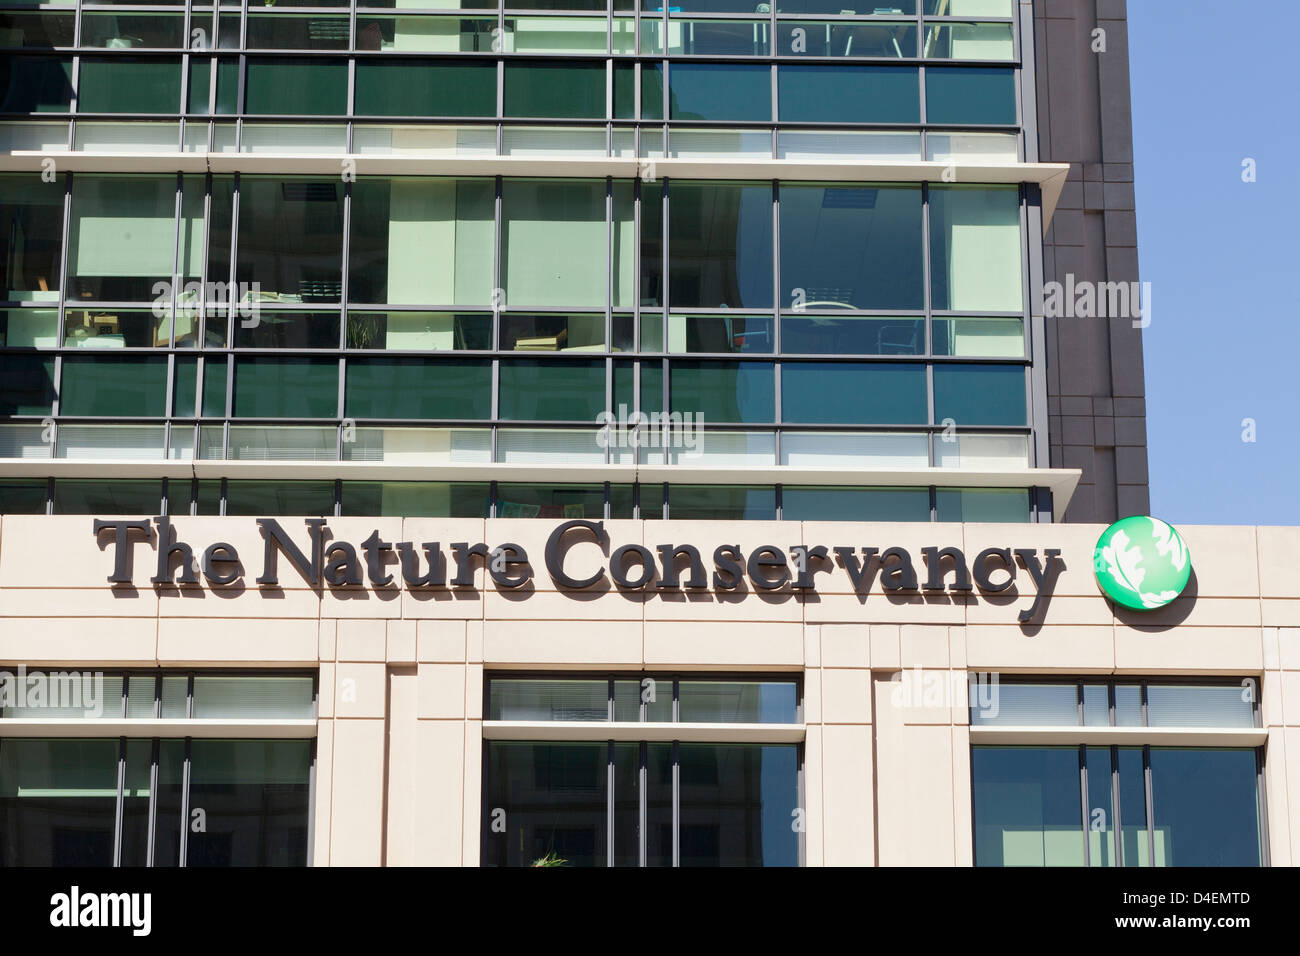 The Nature Conservancy - Stock Image